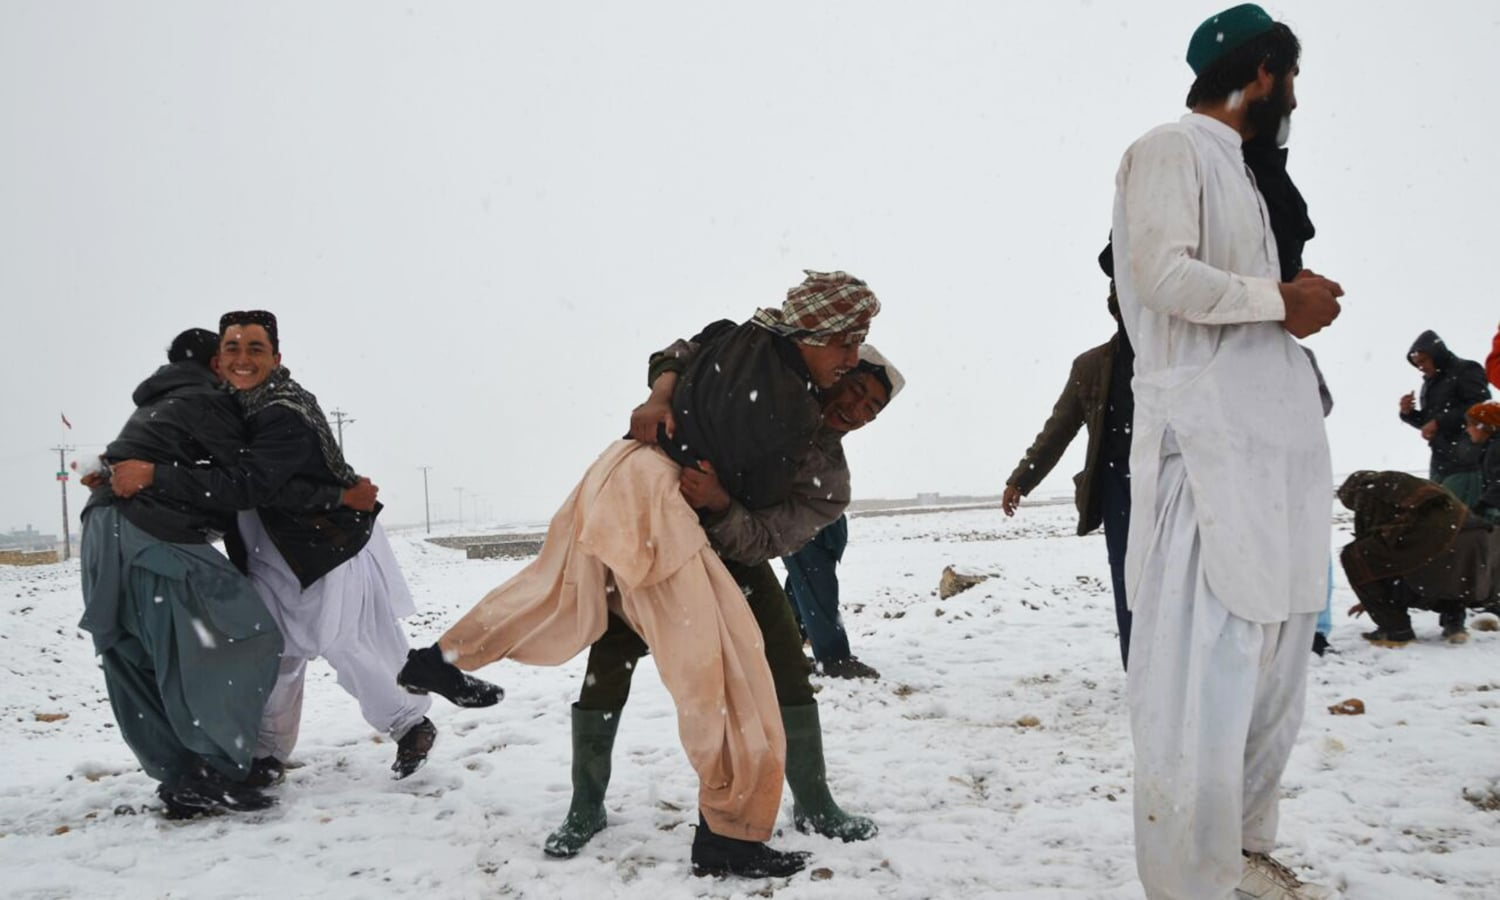 Men wrestle in the snow as Quetta residents celebrate the colder weather.— Photo by Asmatullah Kakar